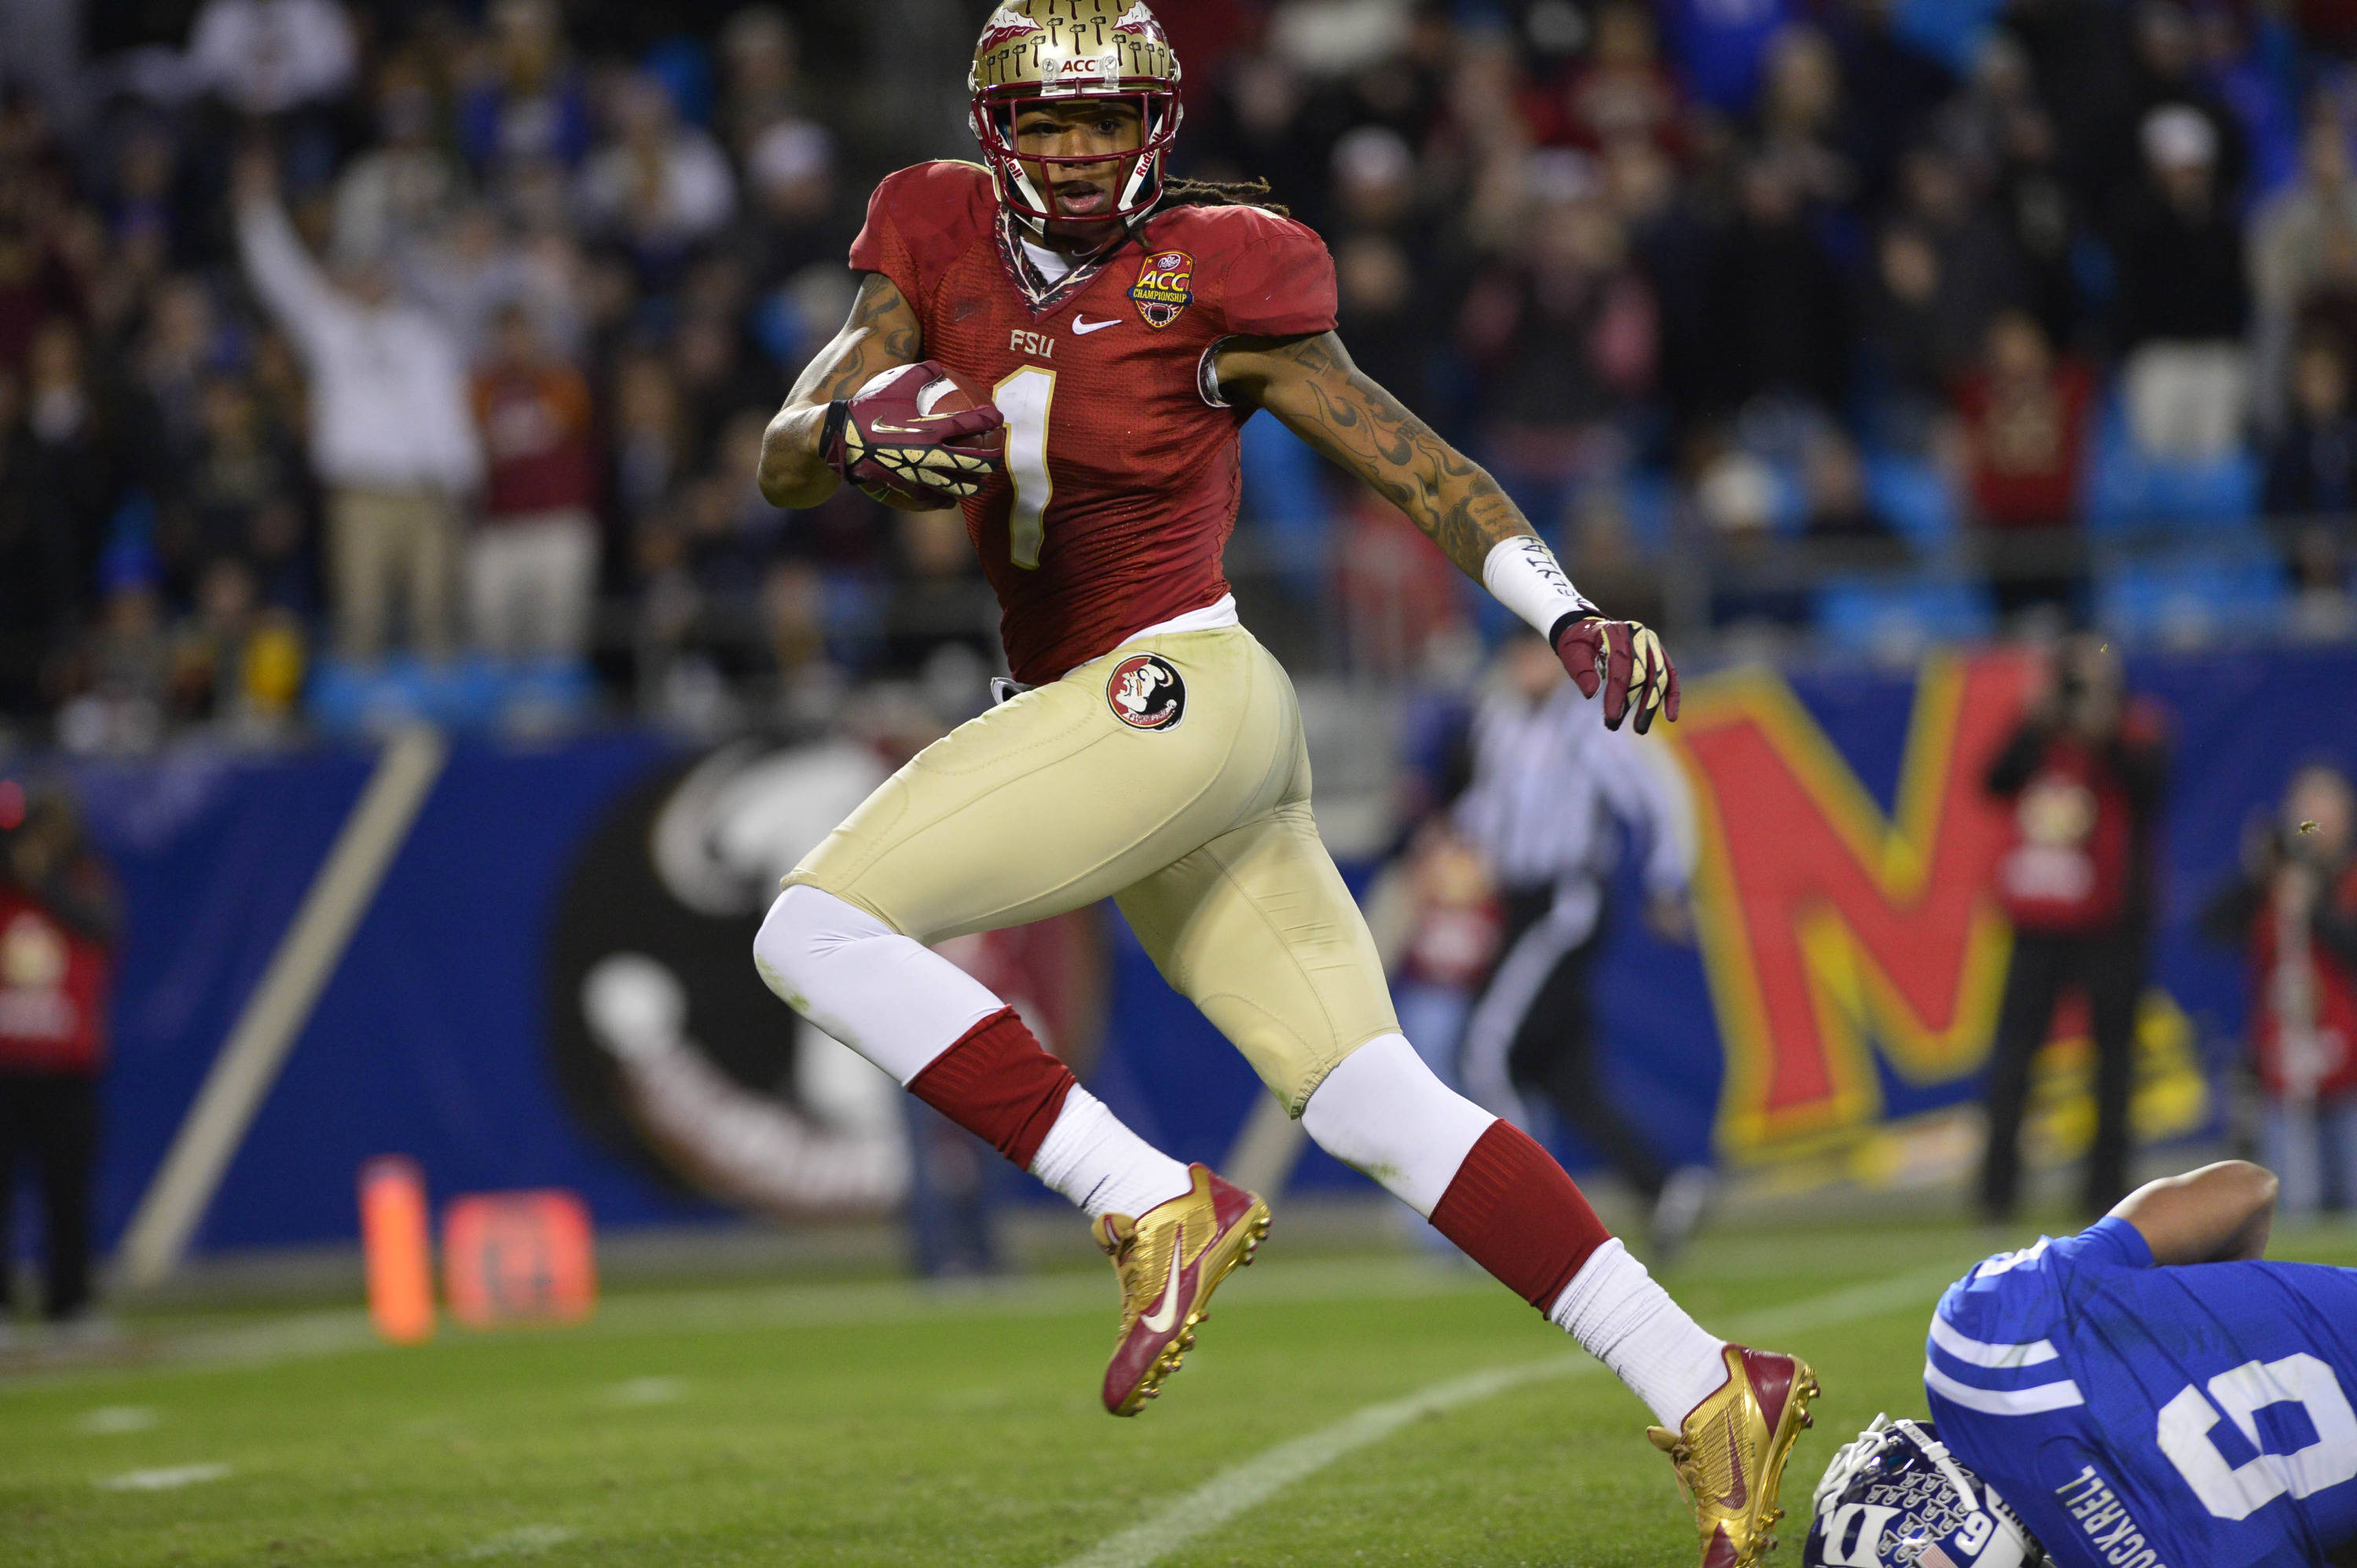 Dec 7, 2013; Charlotte, NC, USA; Florida State Seminoles wide receiver Kelvin Benjamin (1) breaks free from Duke Blue Devils cornerback Ross Cockrell (6) and scores a touchdown in the third quarter at Bank of America Stadium. Mandatory Credit: Bob Donnan-USA TODAY Sports